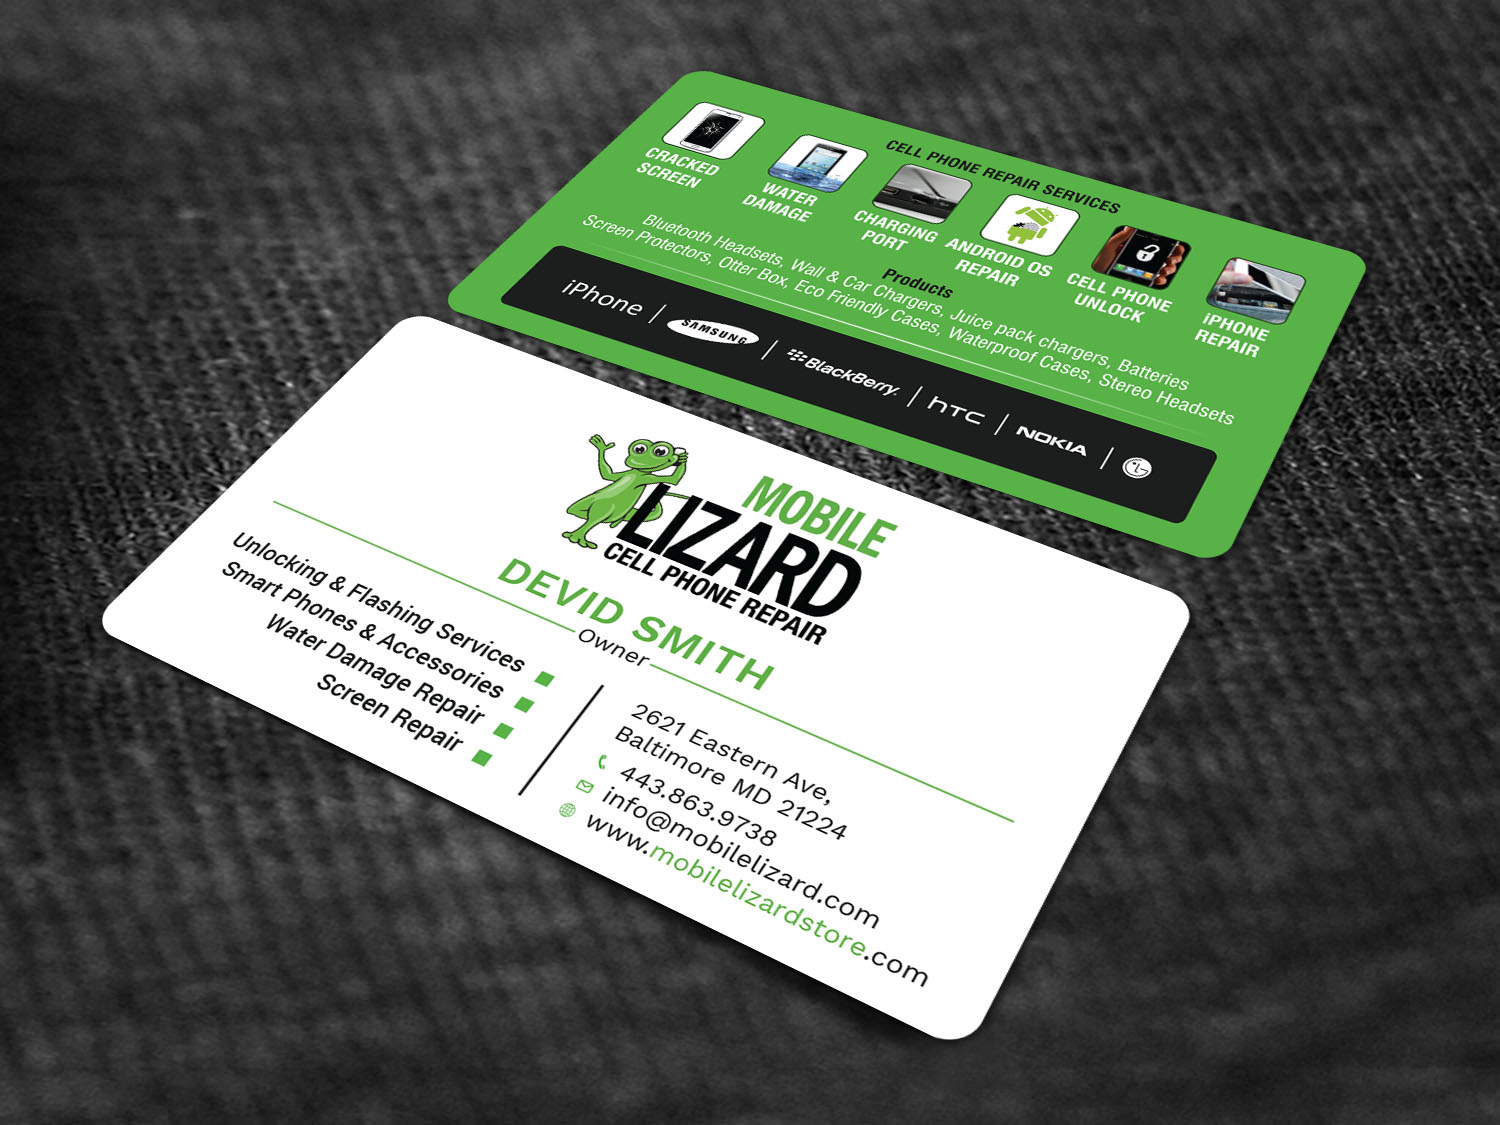 Modern upmarket cell phone business card design for carte blanche business card design by avanger000 for carte blanche communications design 17324115 colourmoves